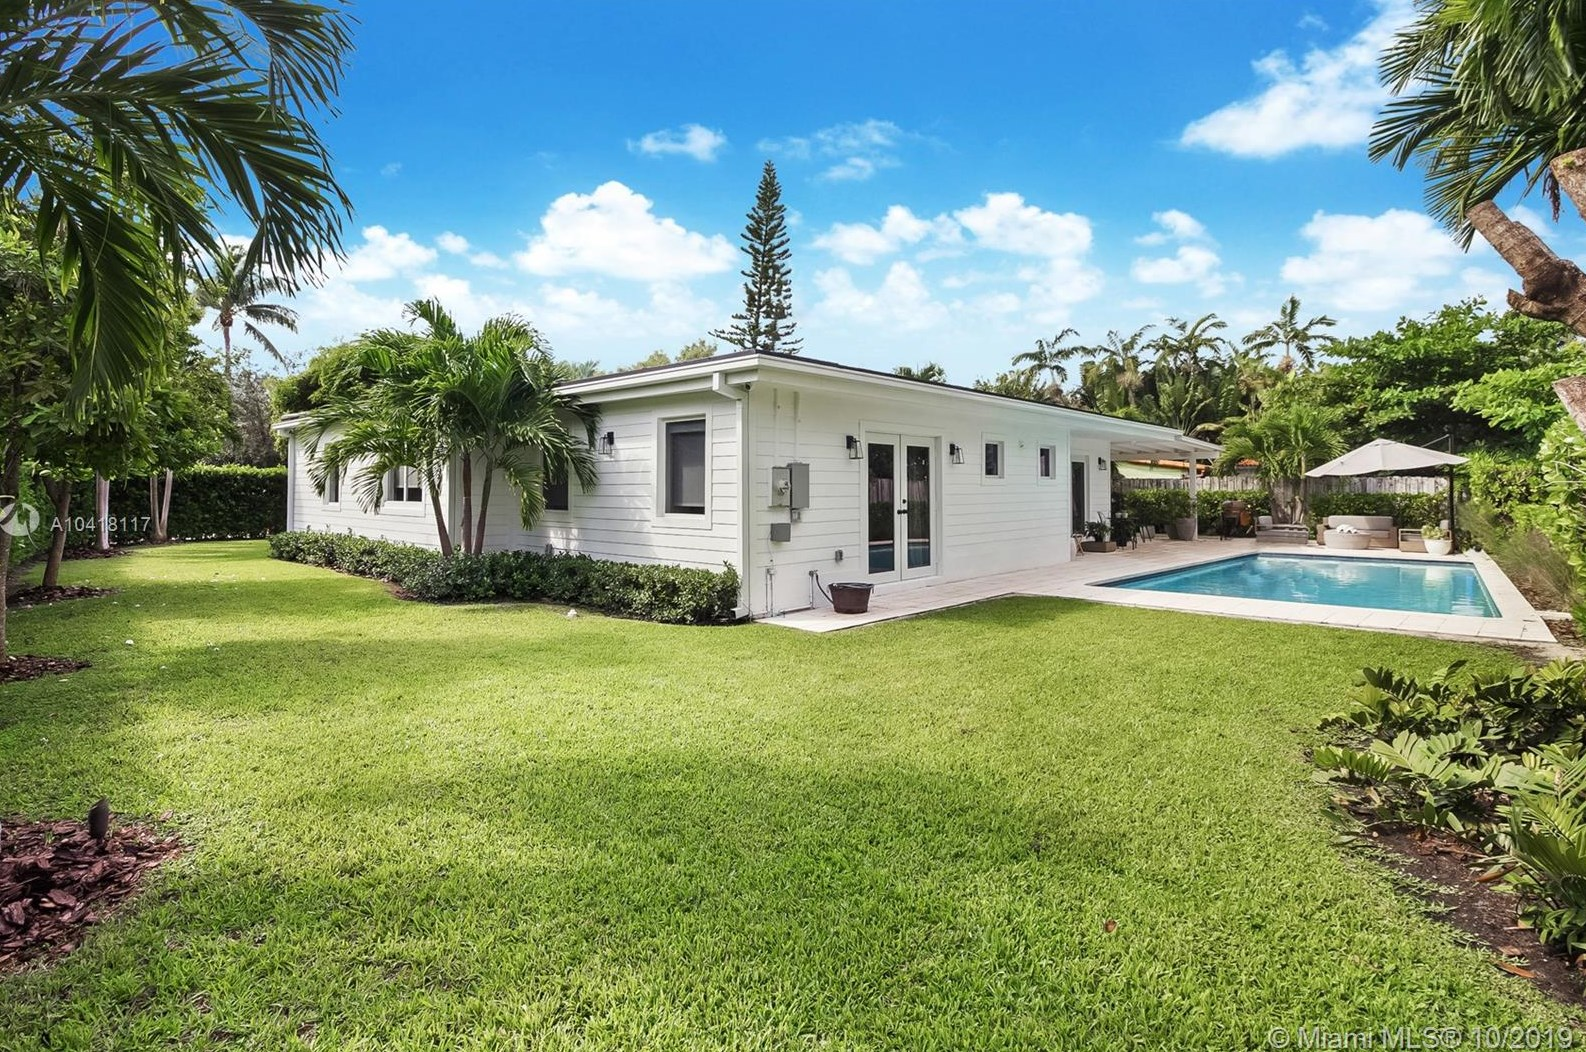 101 Woodcrest Ln, Key Biscayne, FL